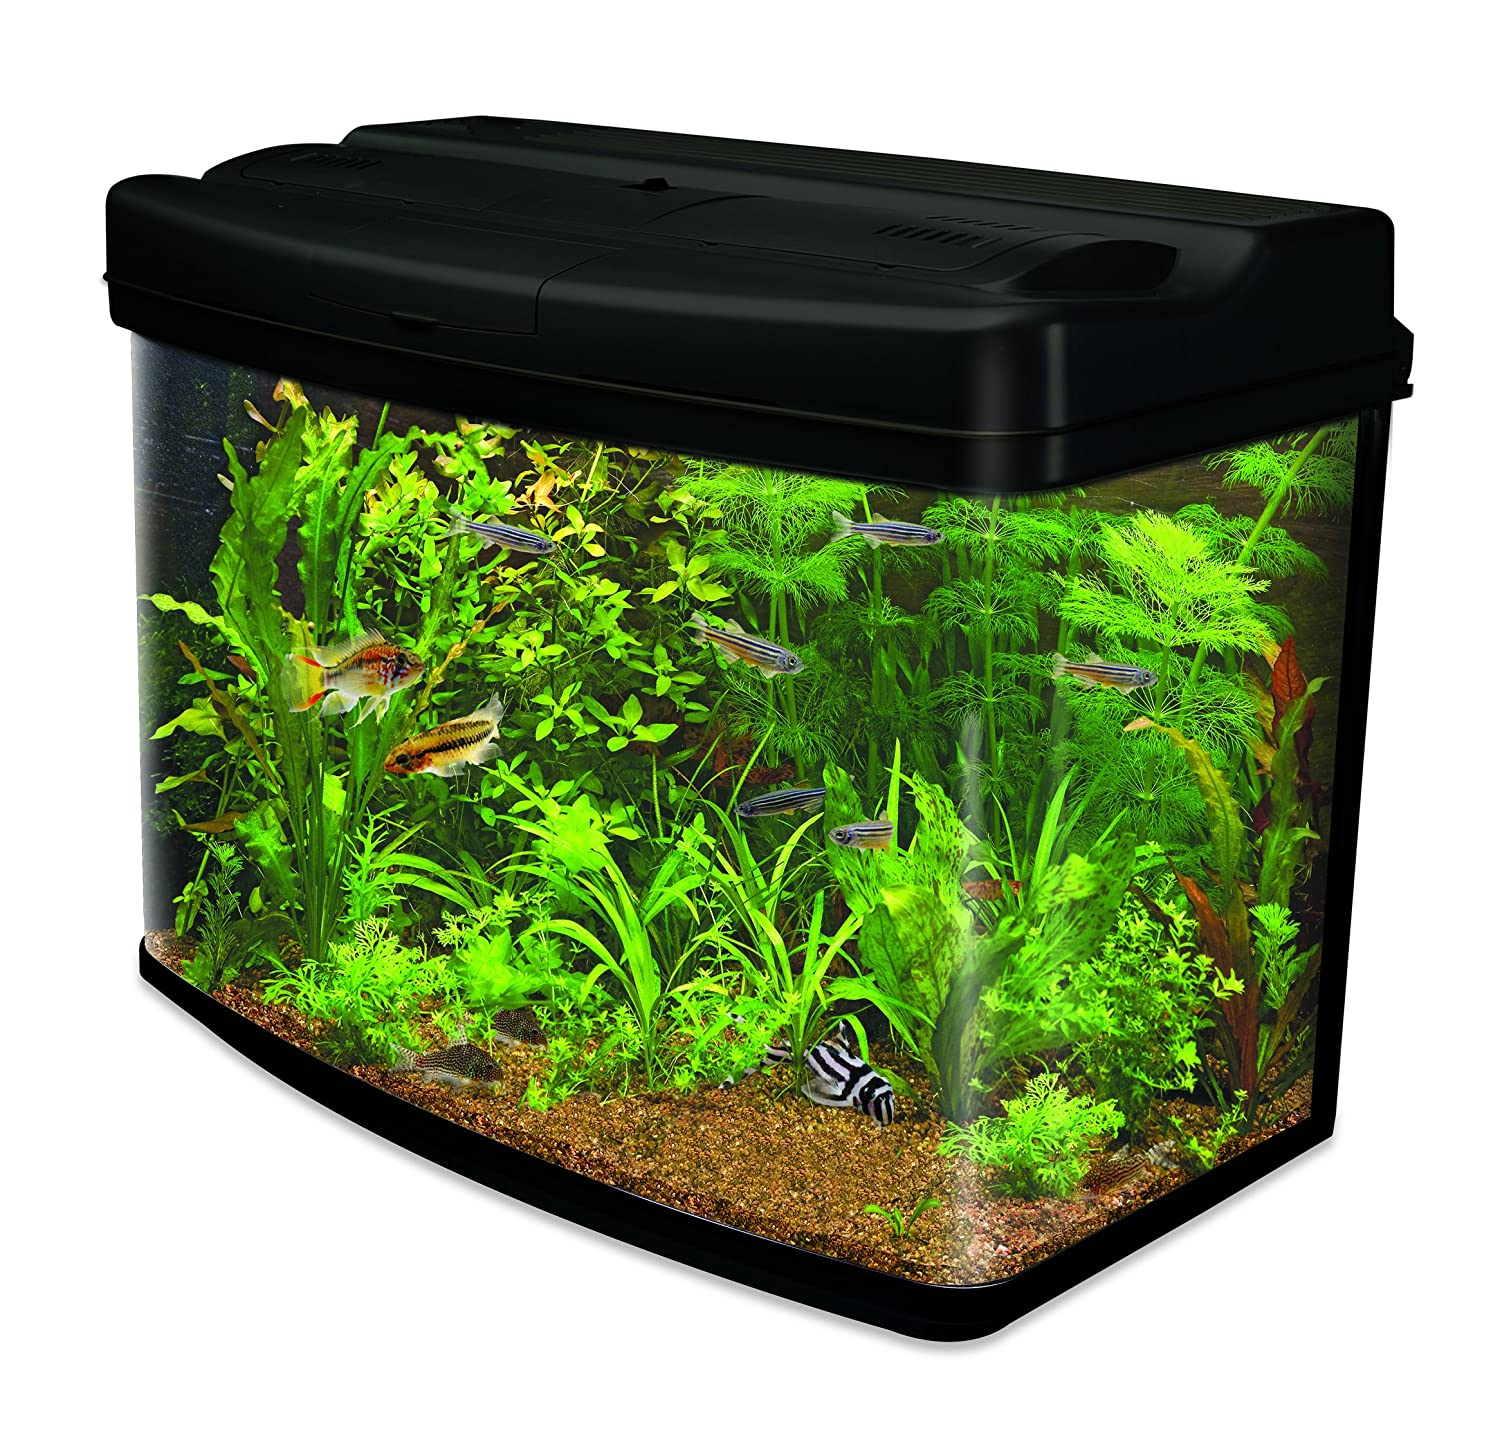 Aquarium fish tank price - Interpet Ama0380 Fish Pod Glass Aquarium Fish Tank